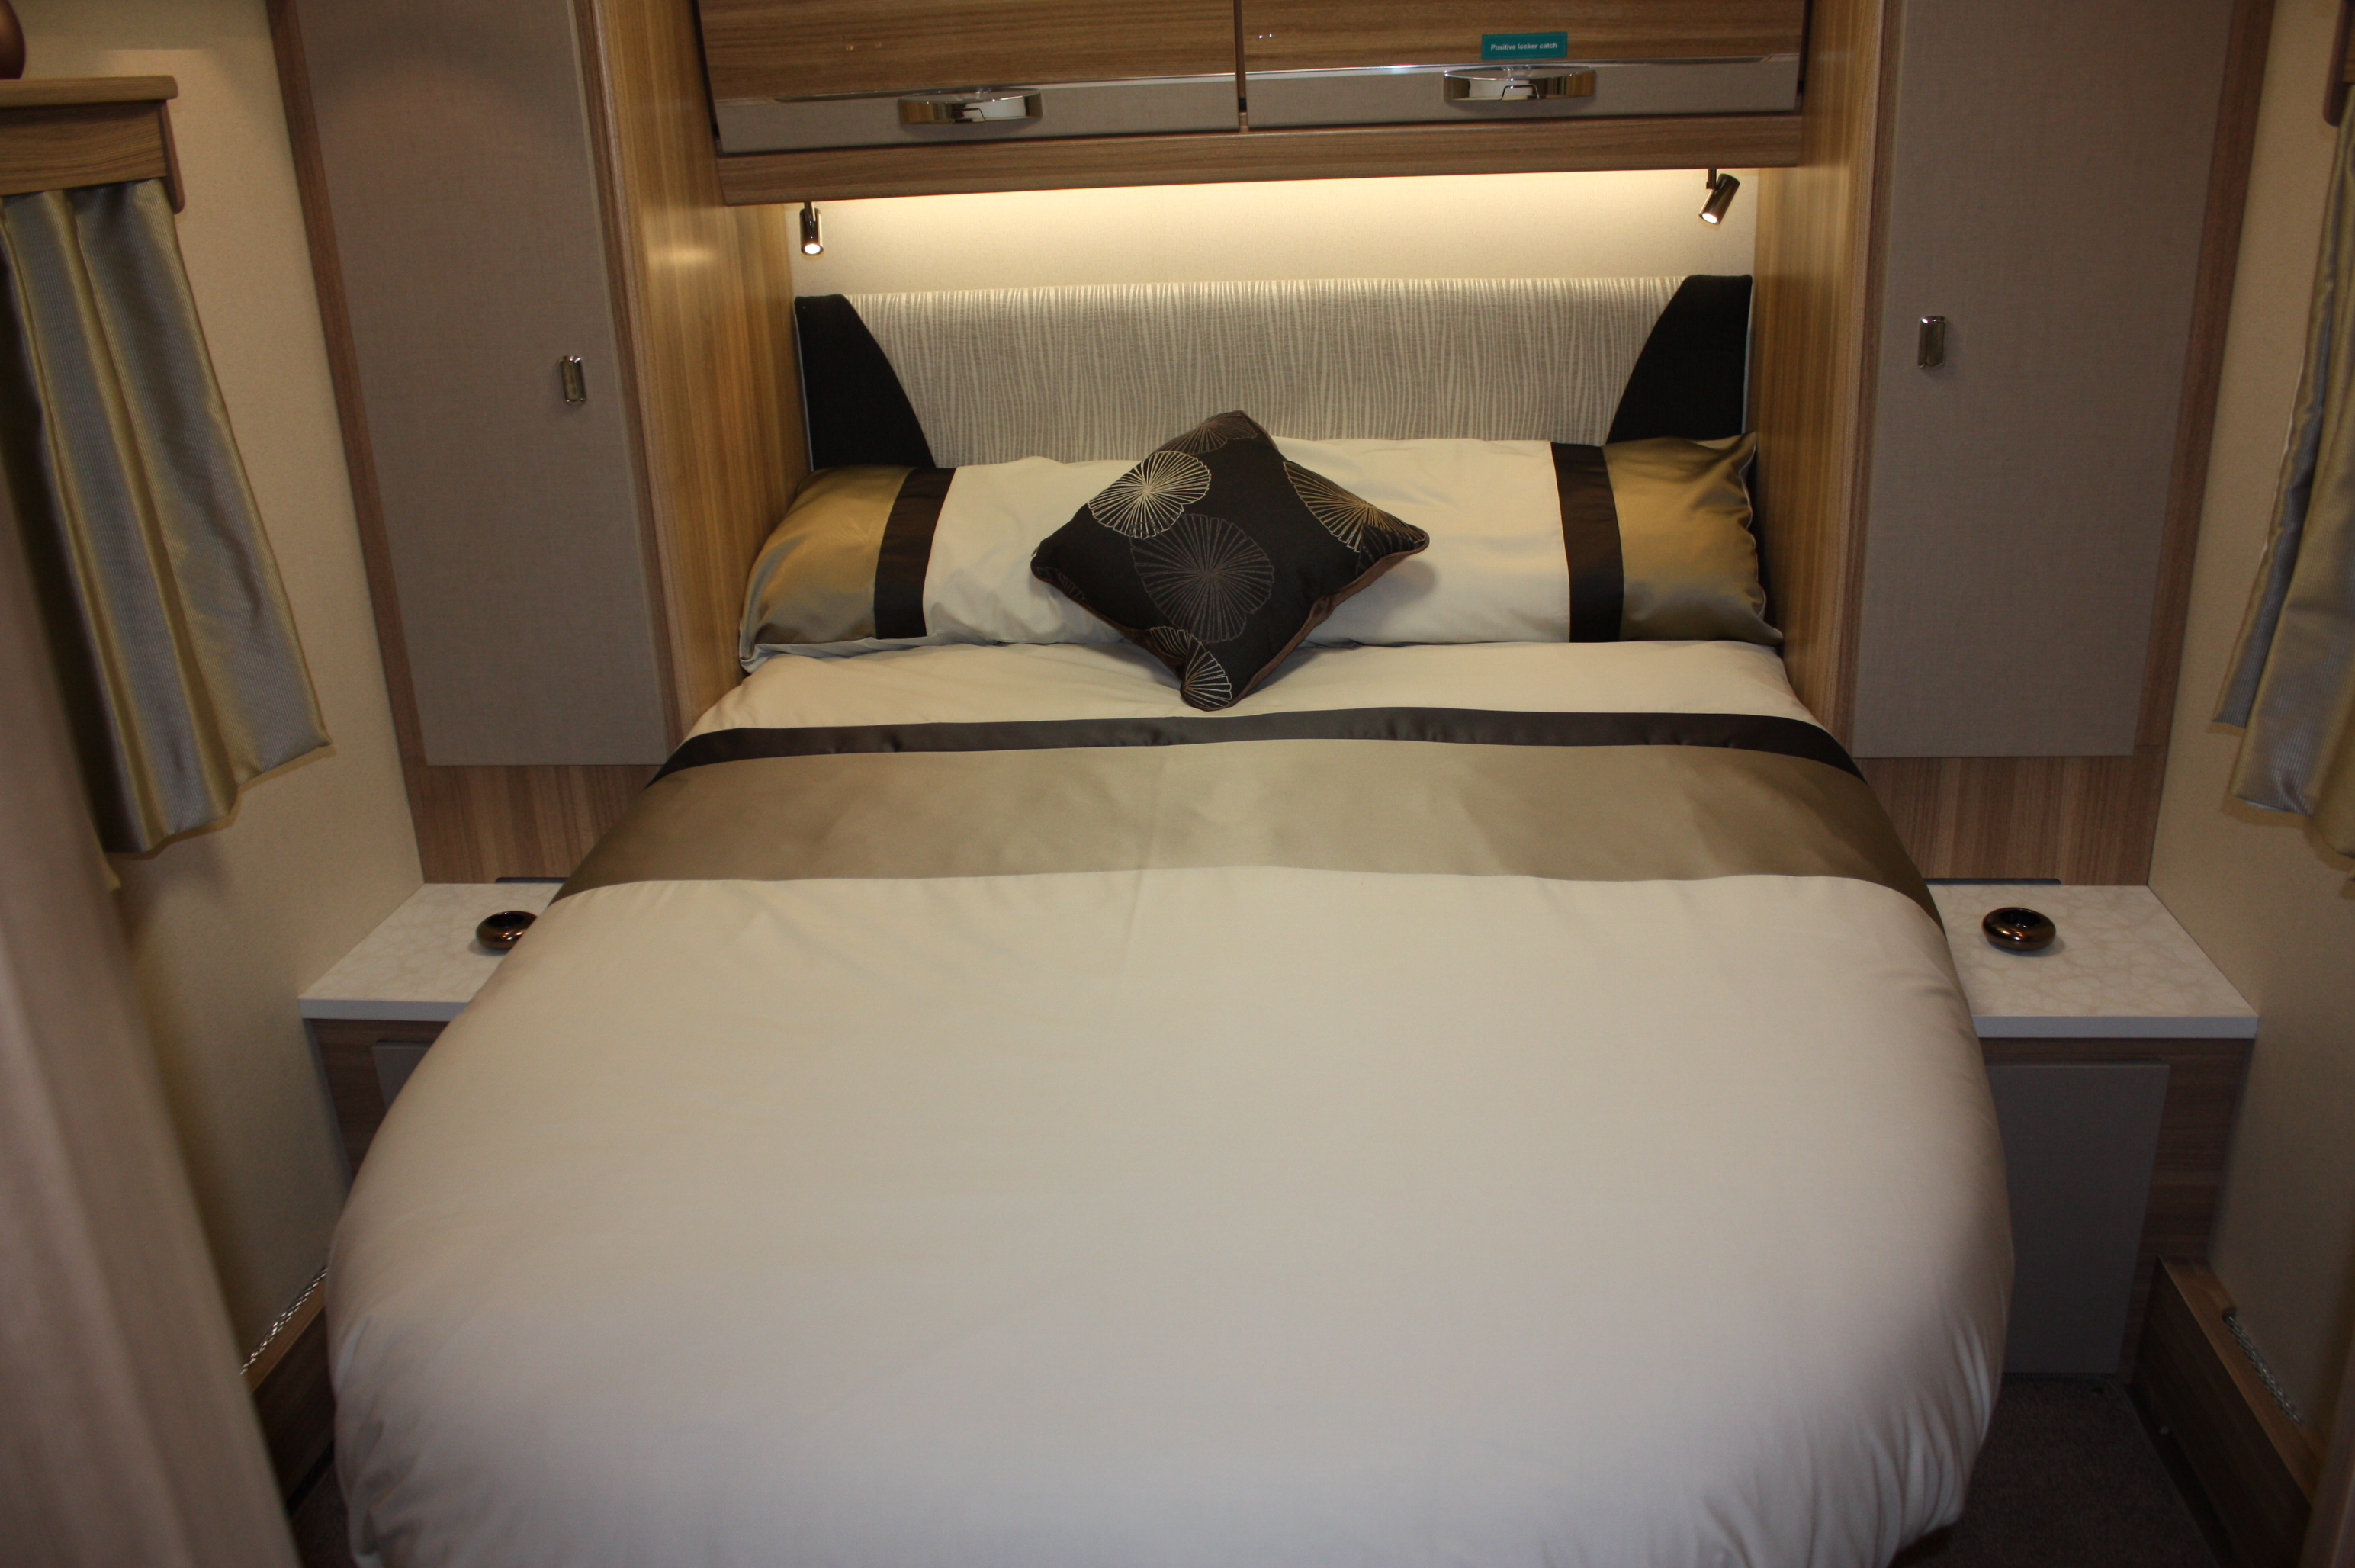 Snuglux Motorhome Bedding from Freedom Is